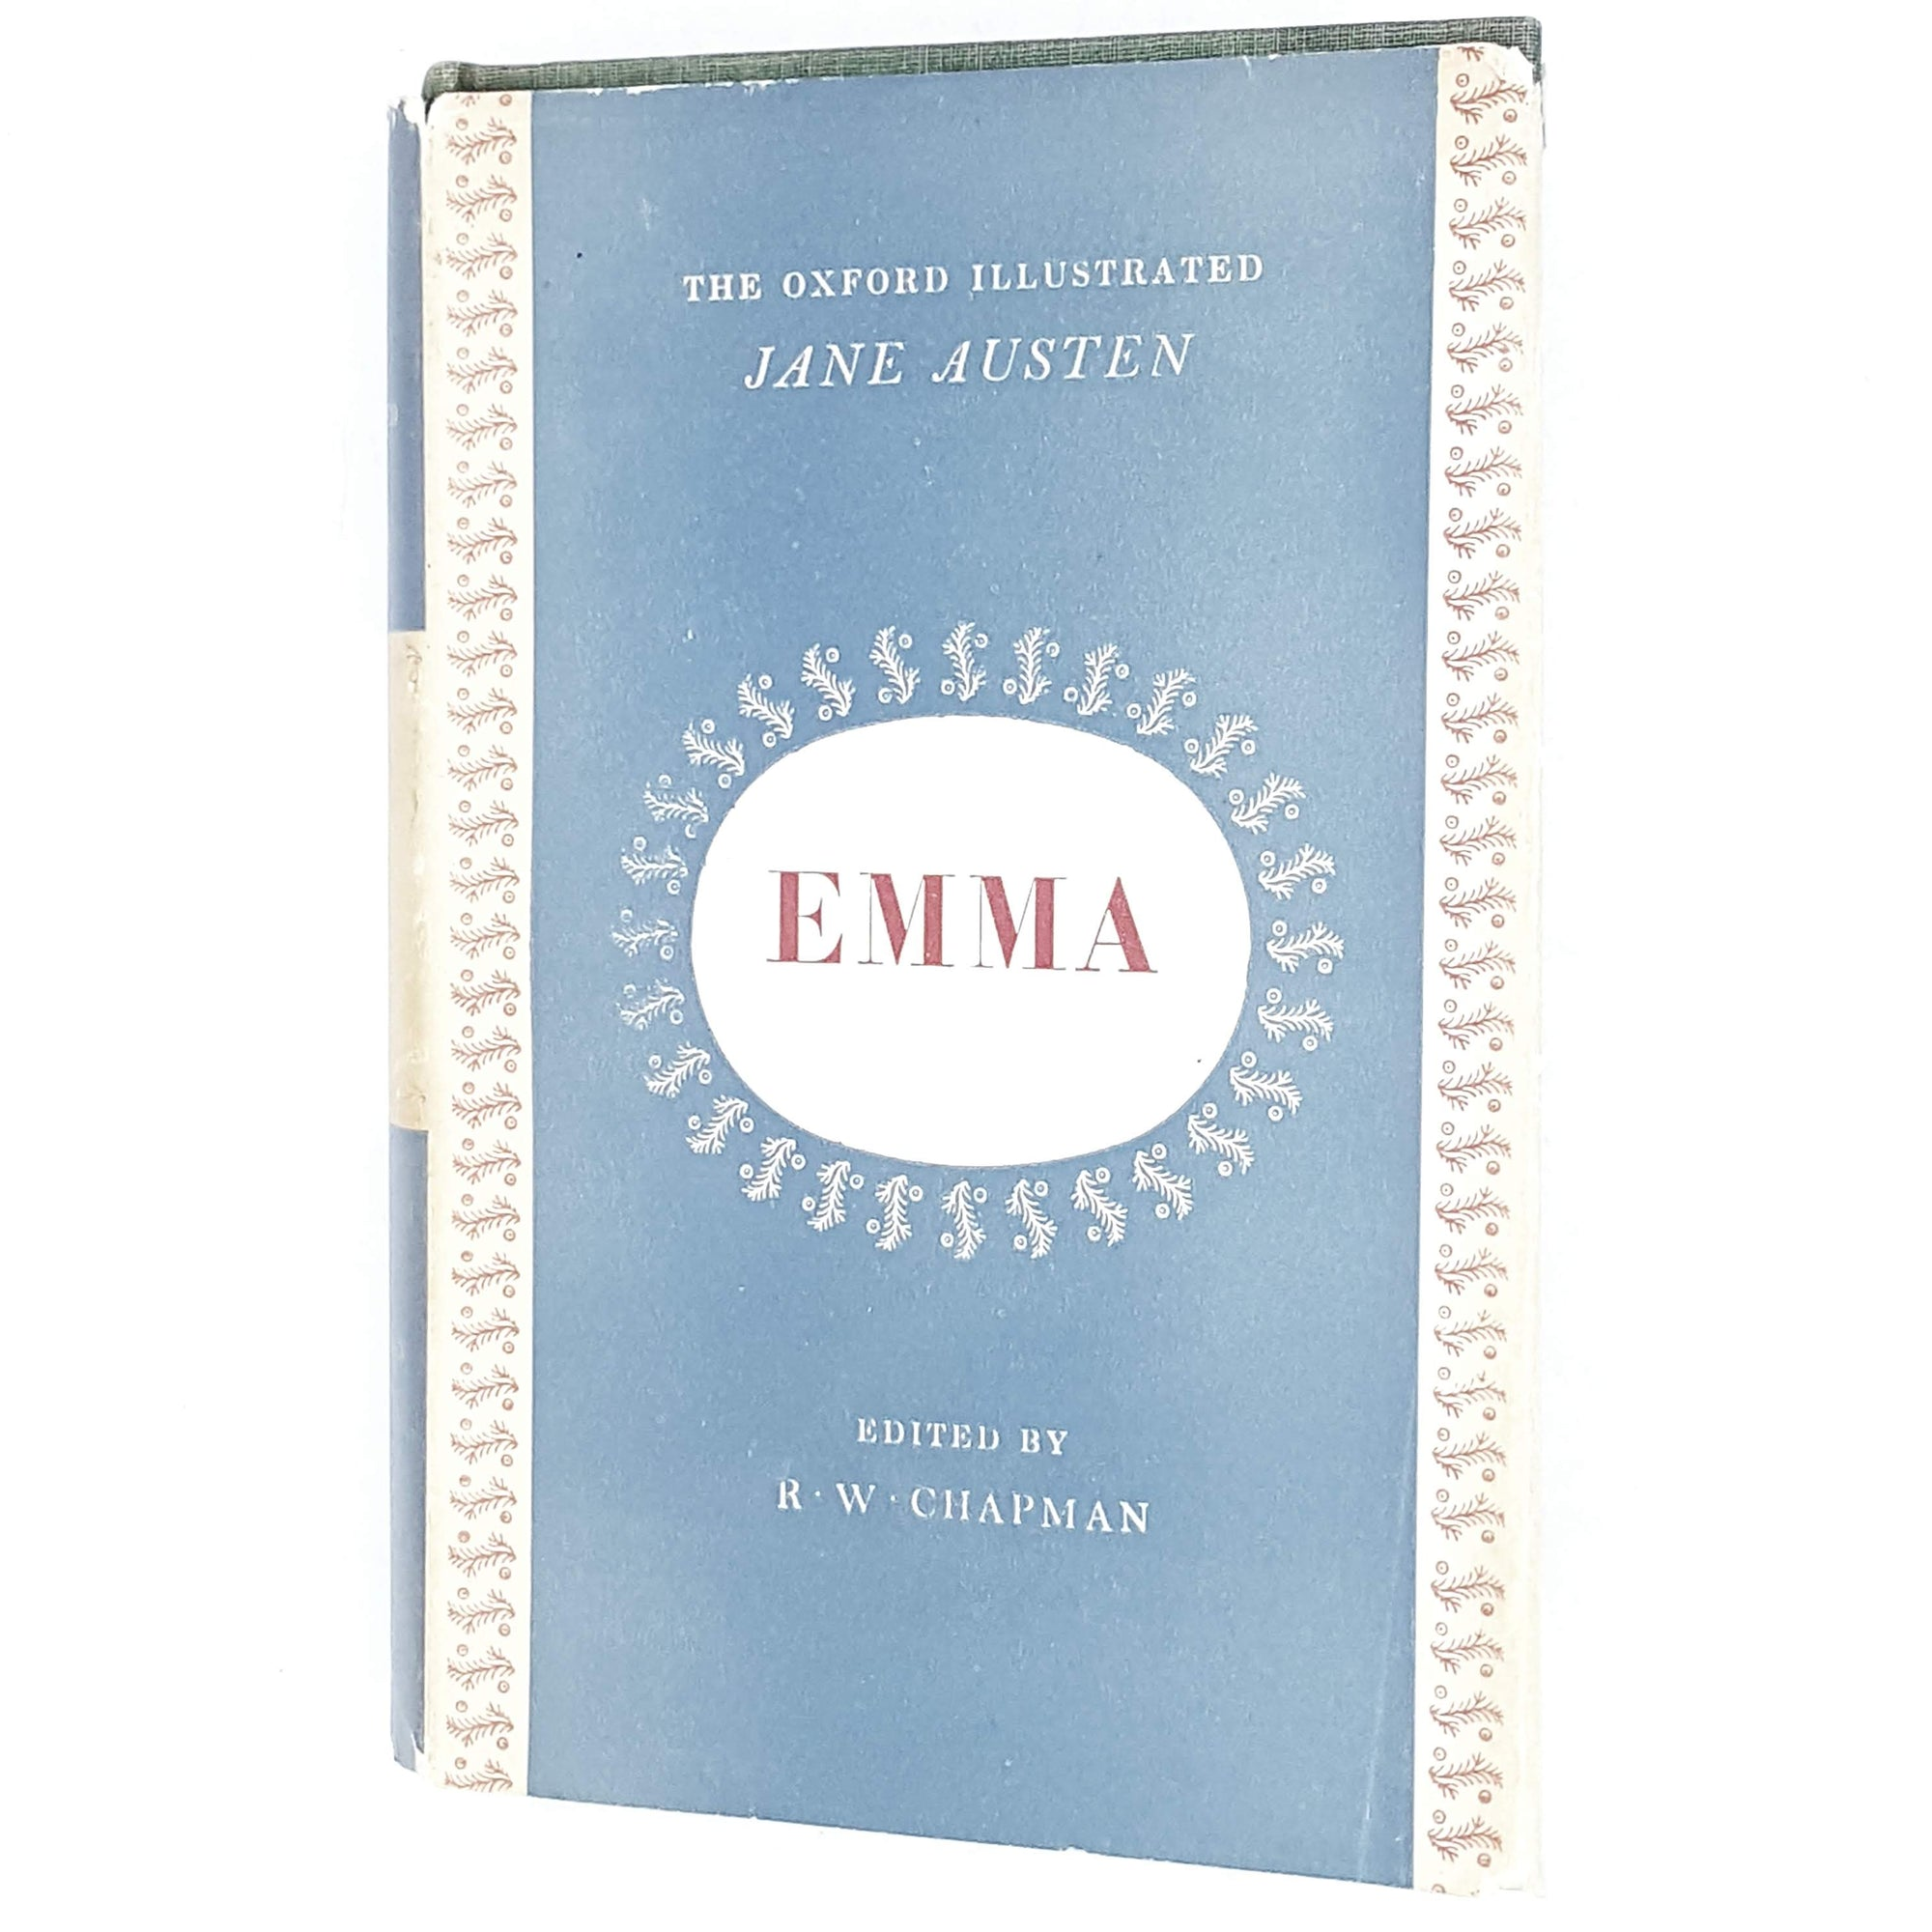 Jane Austen's Emma 1960, illustrated